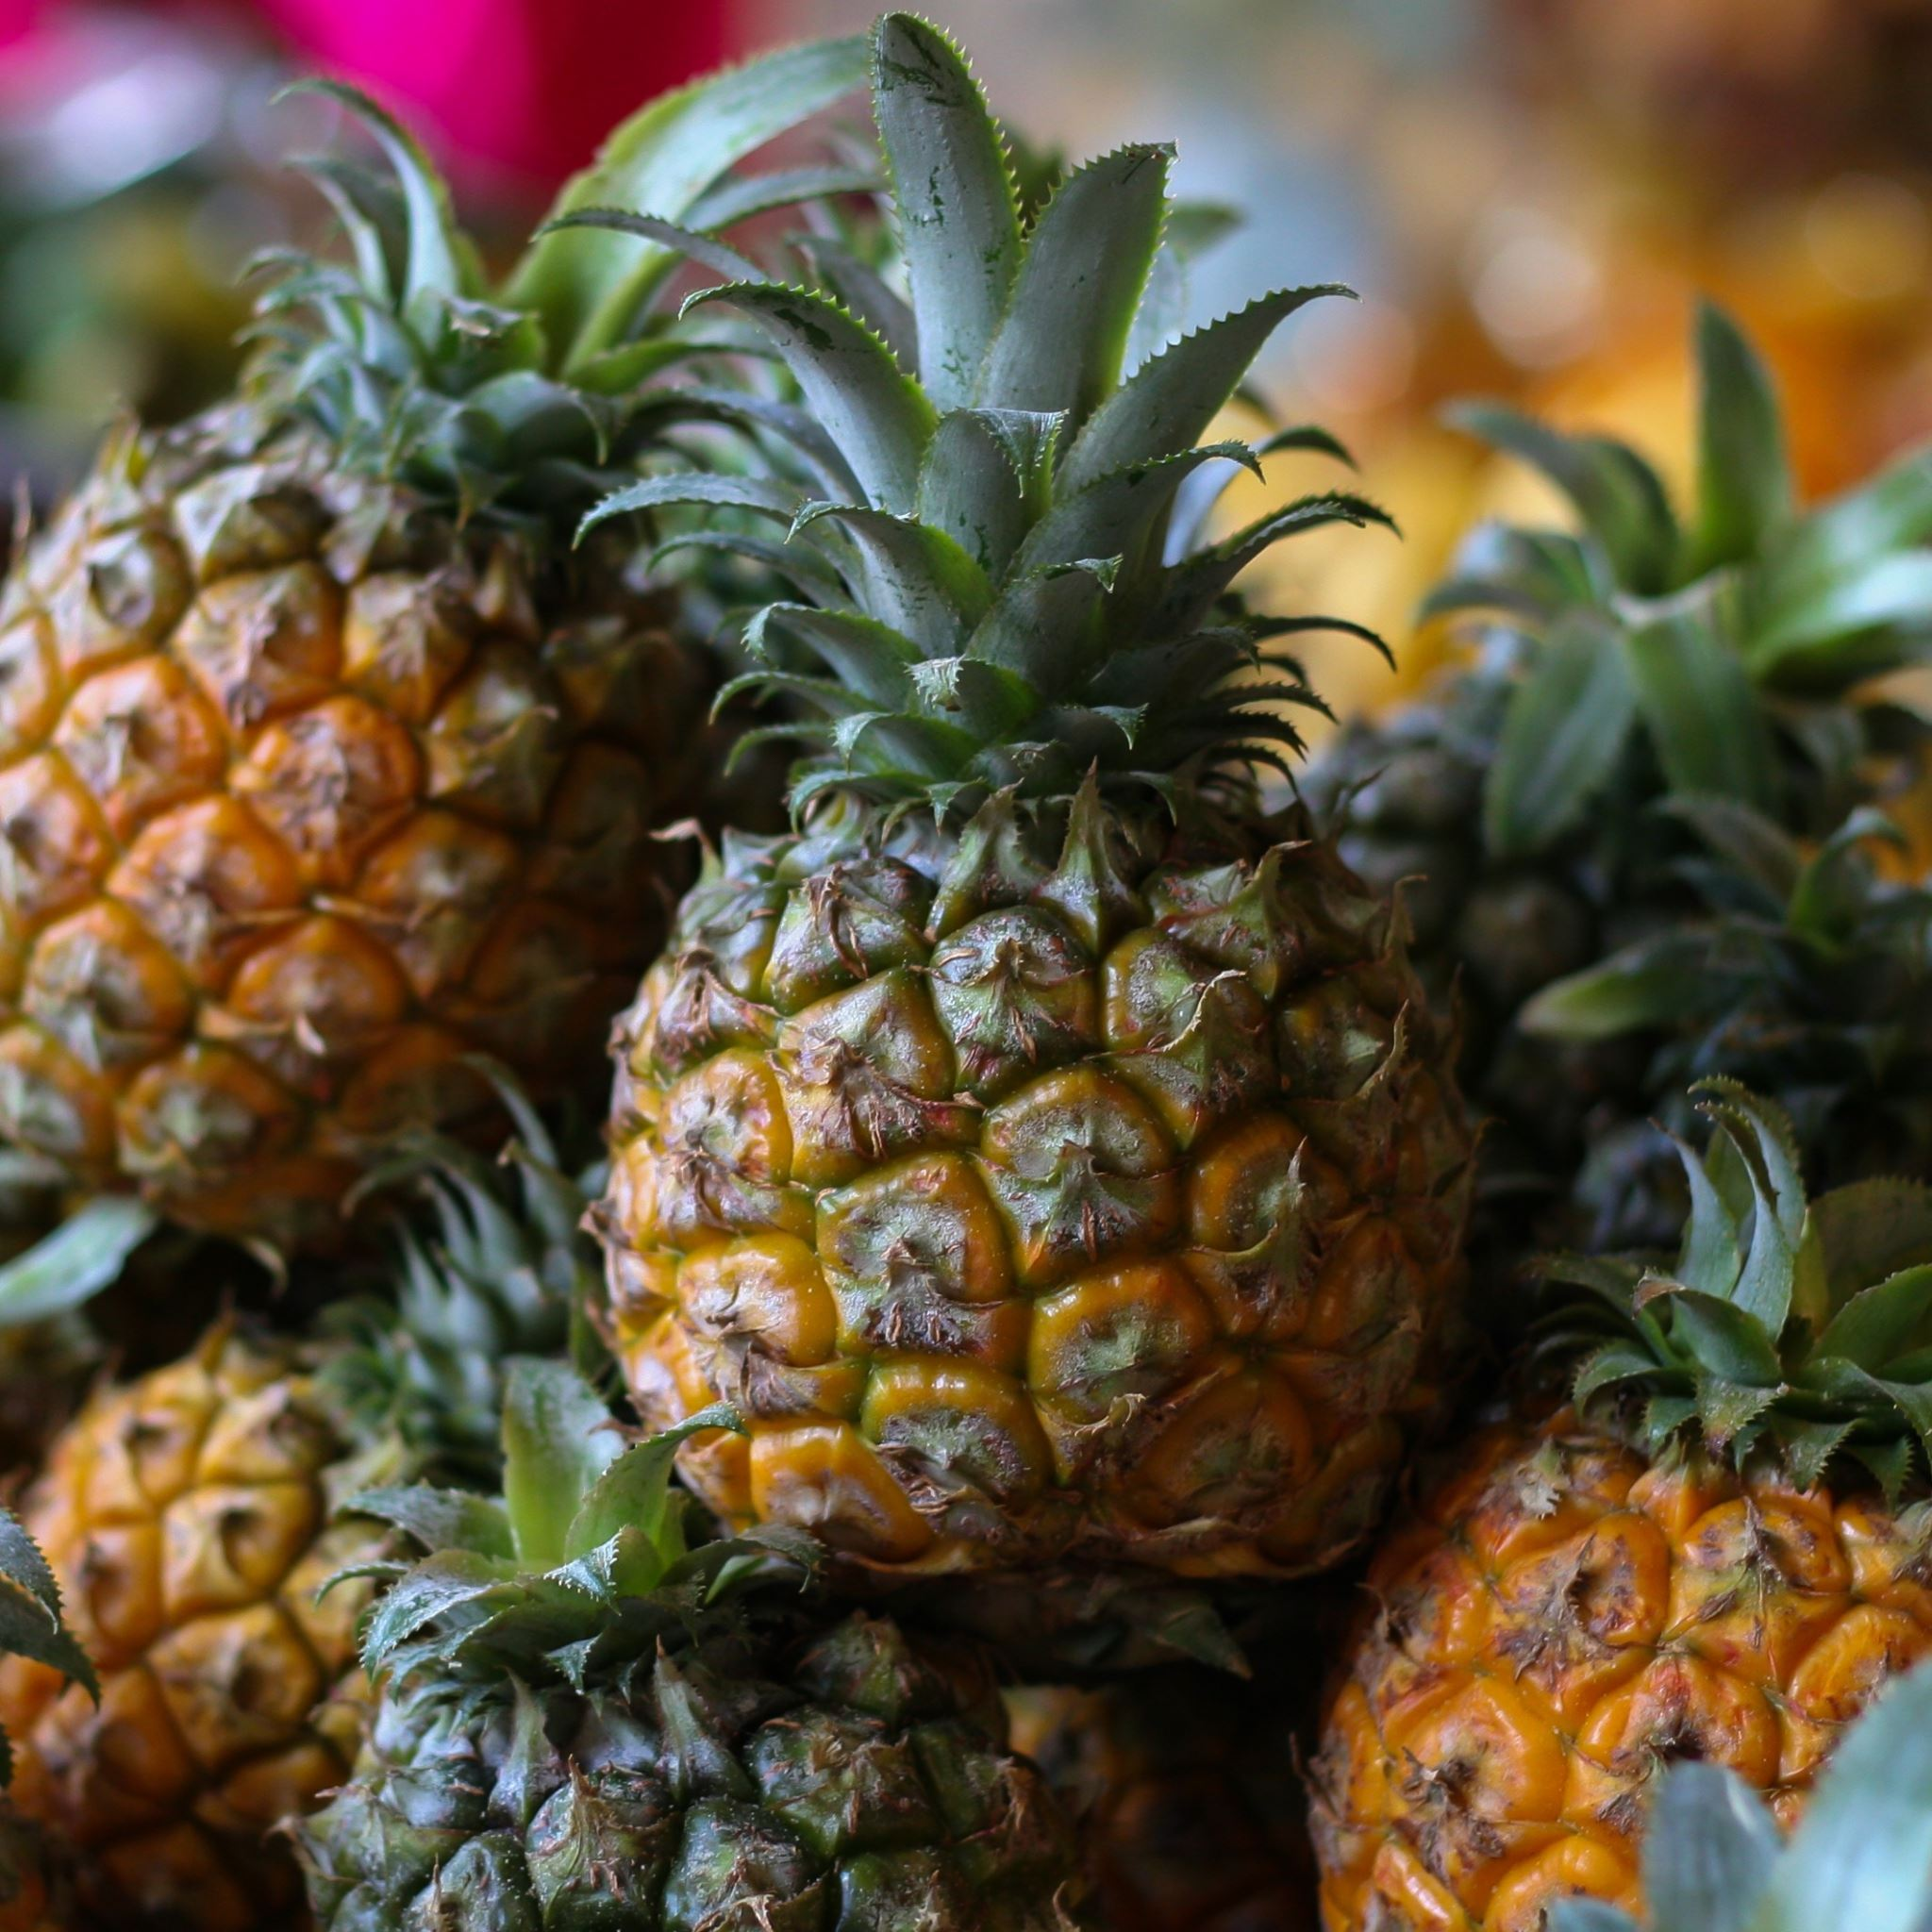 Pineapple Fruit Market iPad Air wallpaper